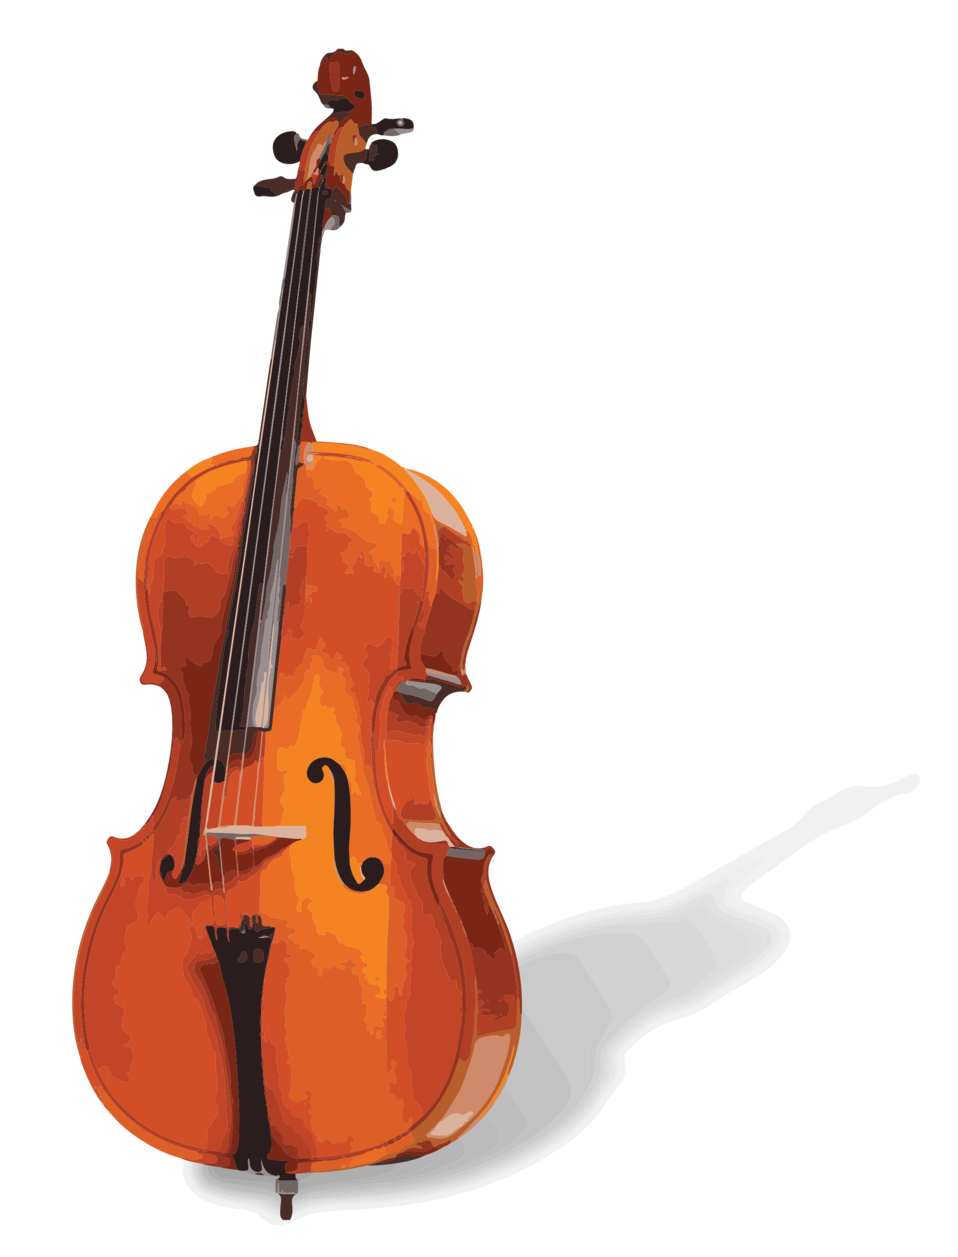 image royalty free Public domain clip art. Bass clipart cello.